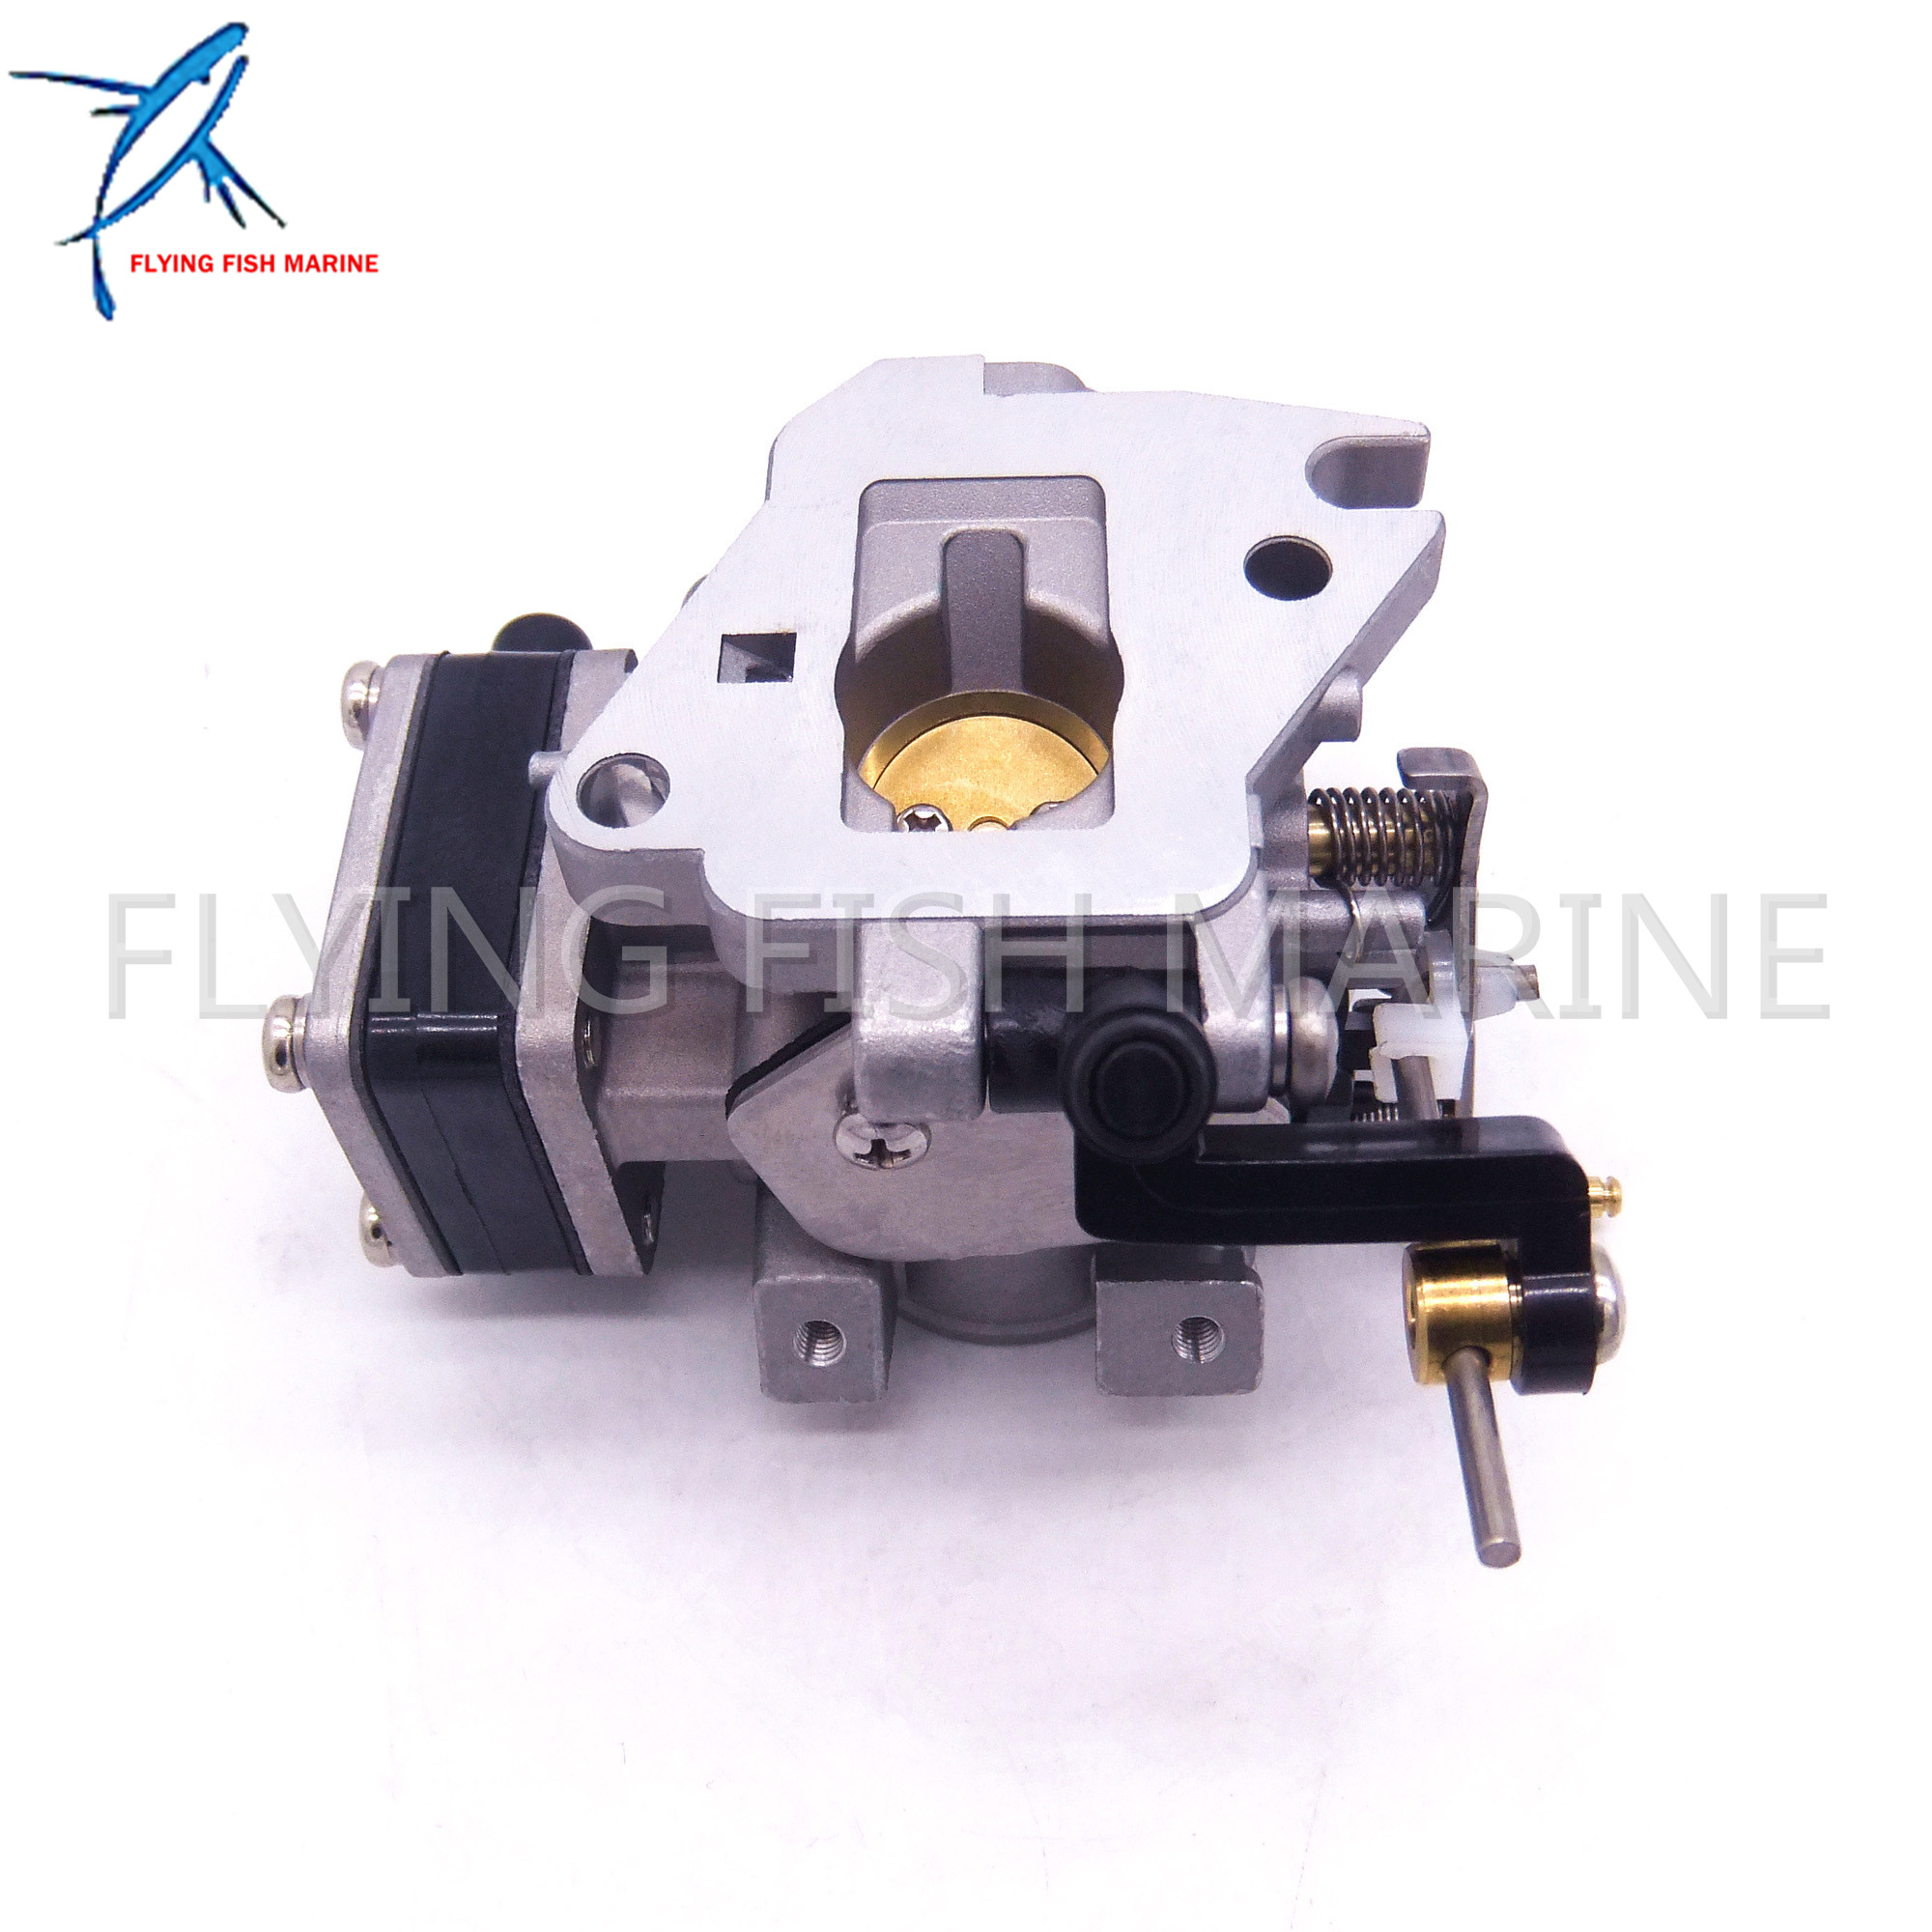 Outboard Engines Carburetor Carb assy for Yamaha 6E8-14301-05 6E7-14301 684-14301 2-stroke 9.9hp 15hp Boat Motor boat engines 2e